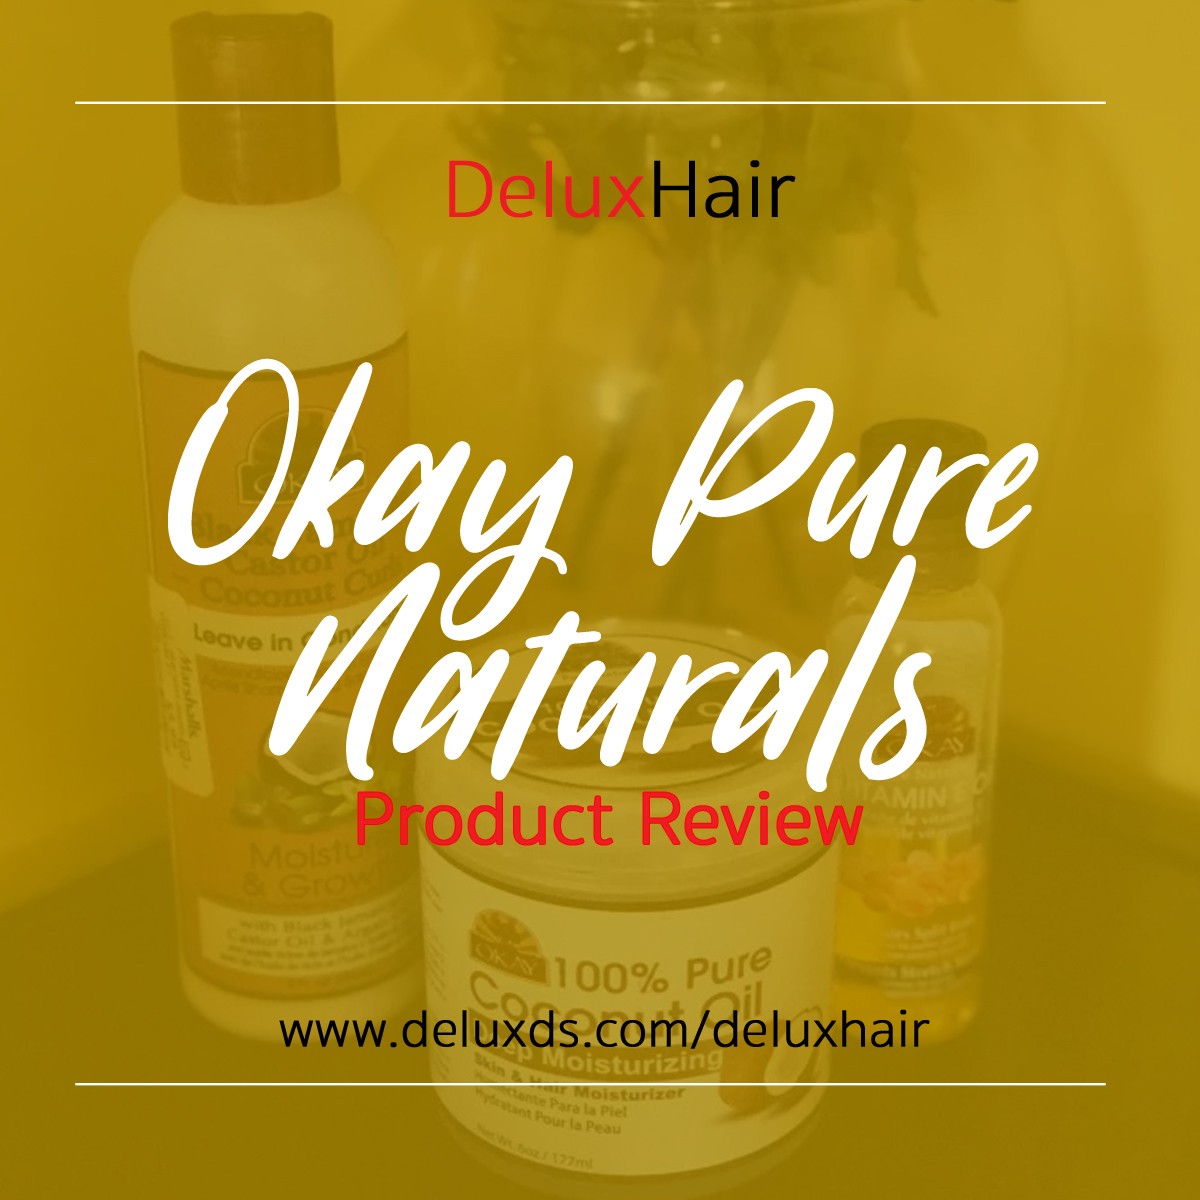 DeluxHair - Okay Pure Naturals Product Review